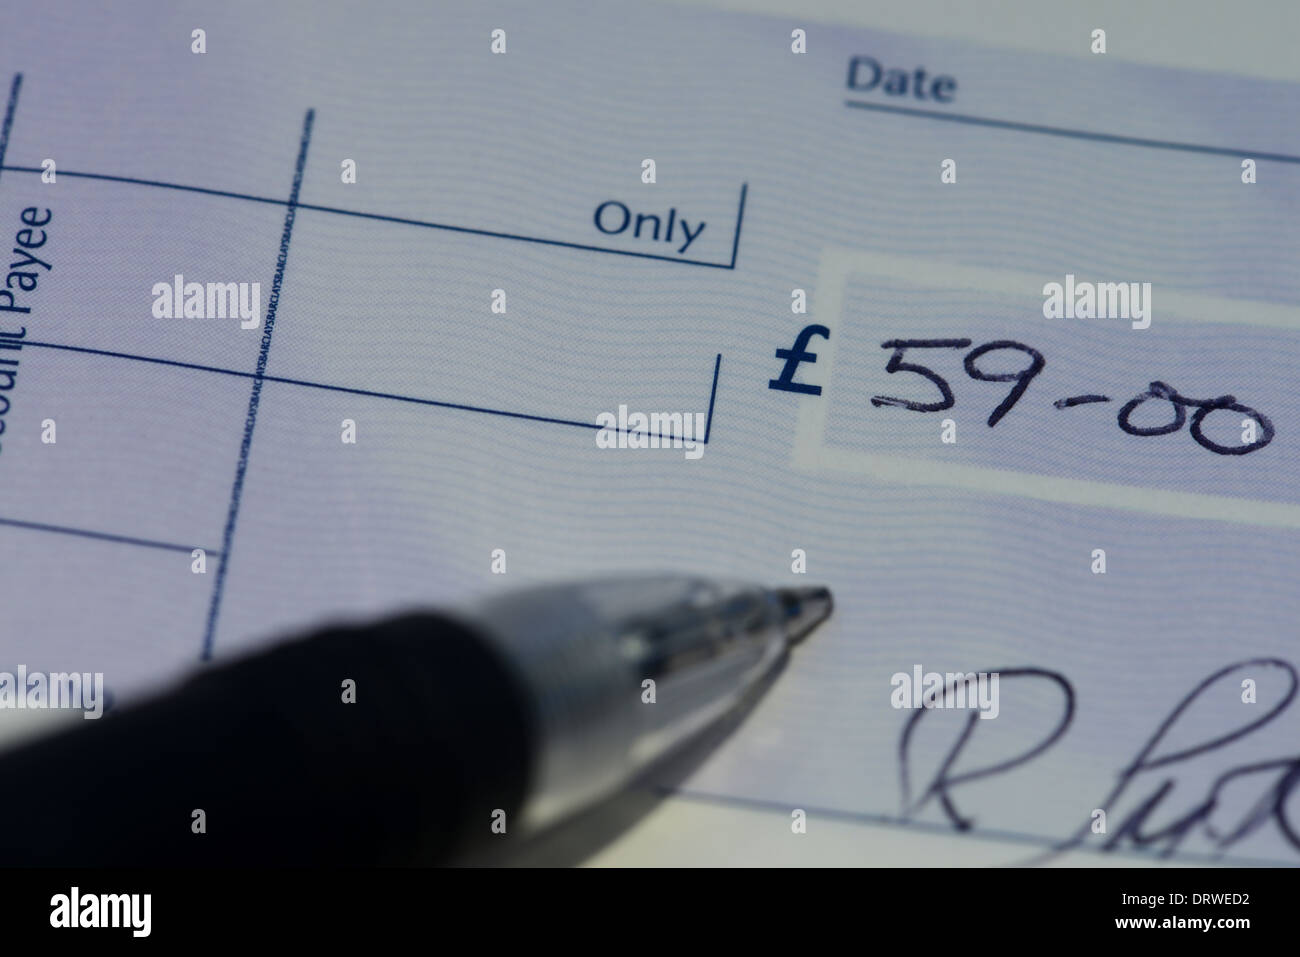 Cheque being written - Stock Image